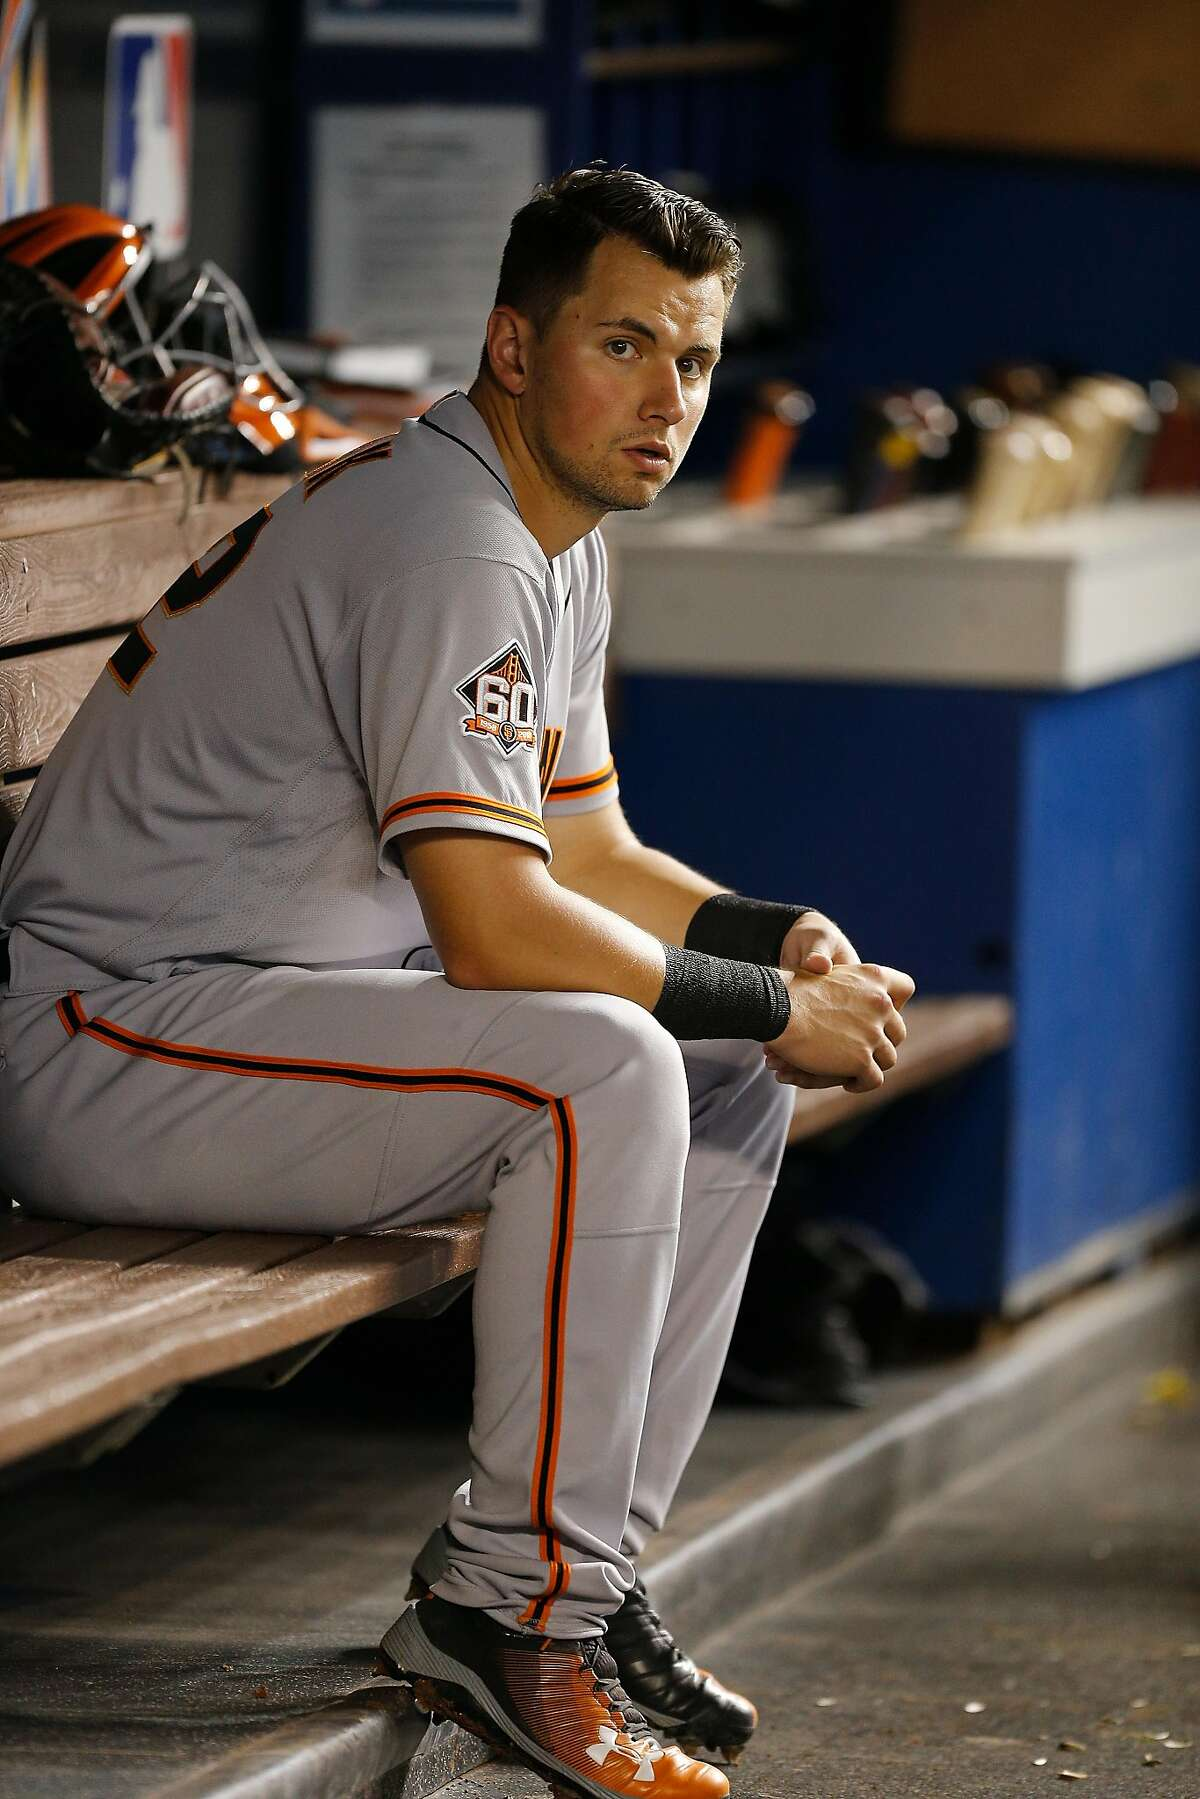 Why the Giants will be bad: well, they can't hit In 2018, the Giants didn't hit. Their 82 wRC+ (an advanced hitting statistic that measures offensive value) was last in the majors. What did the Giants do the offseason to improve their league-worst offense? Well, they signed a whopping zero position players to major-league contracts.